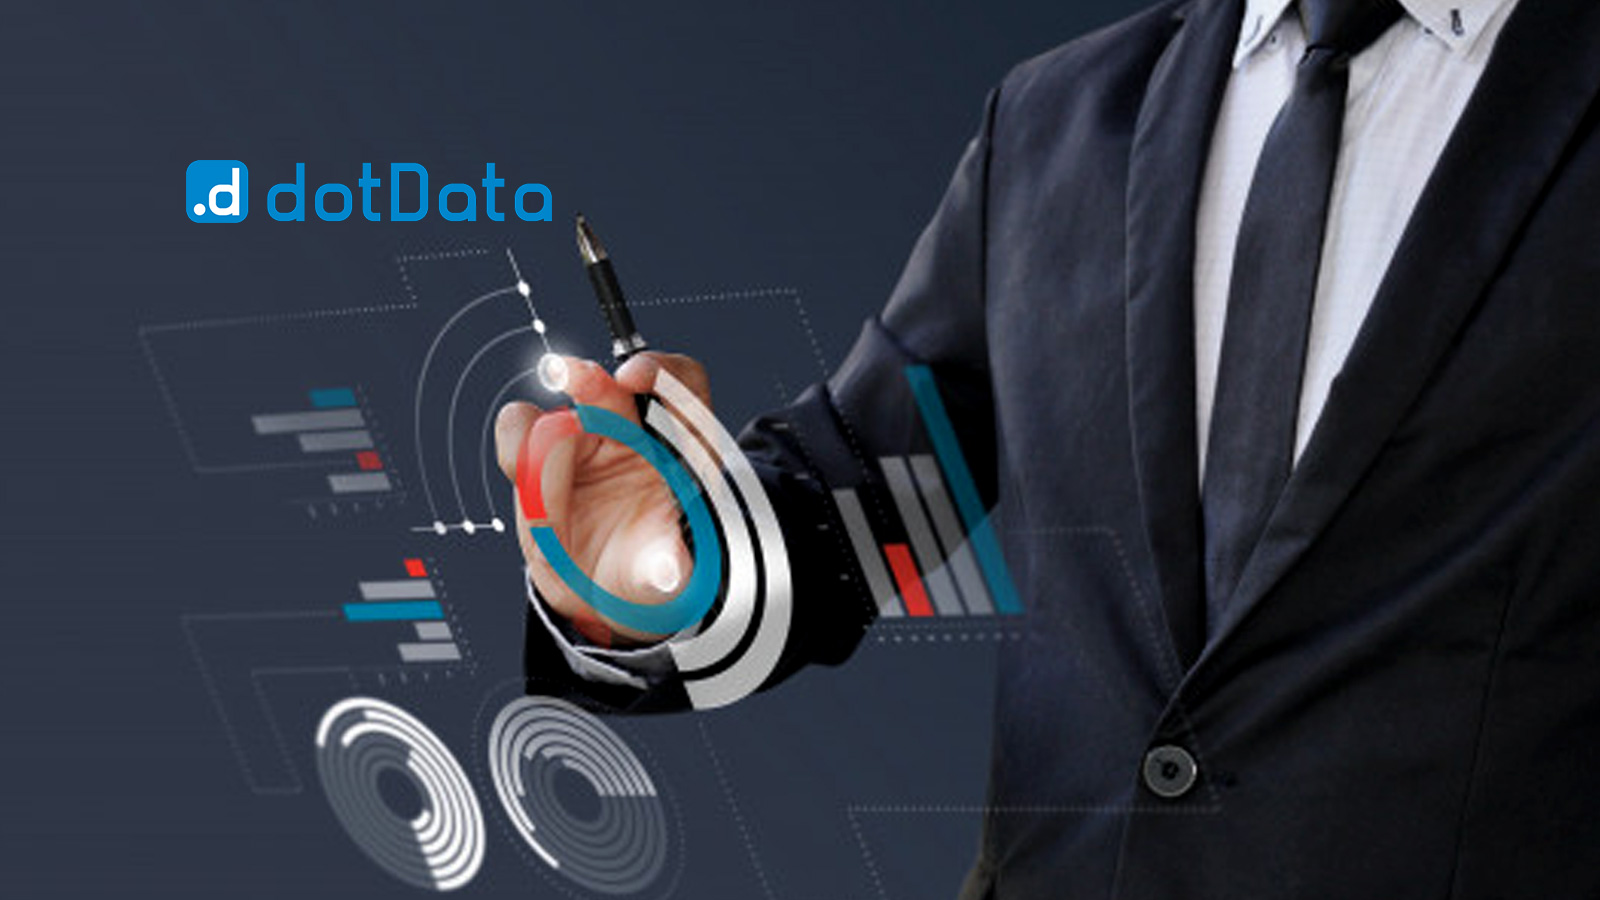 dotData to Showcase New Version of Its Data Science Automation